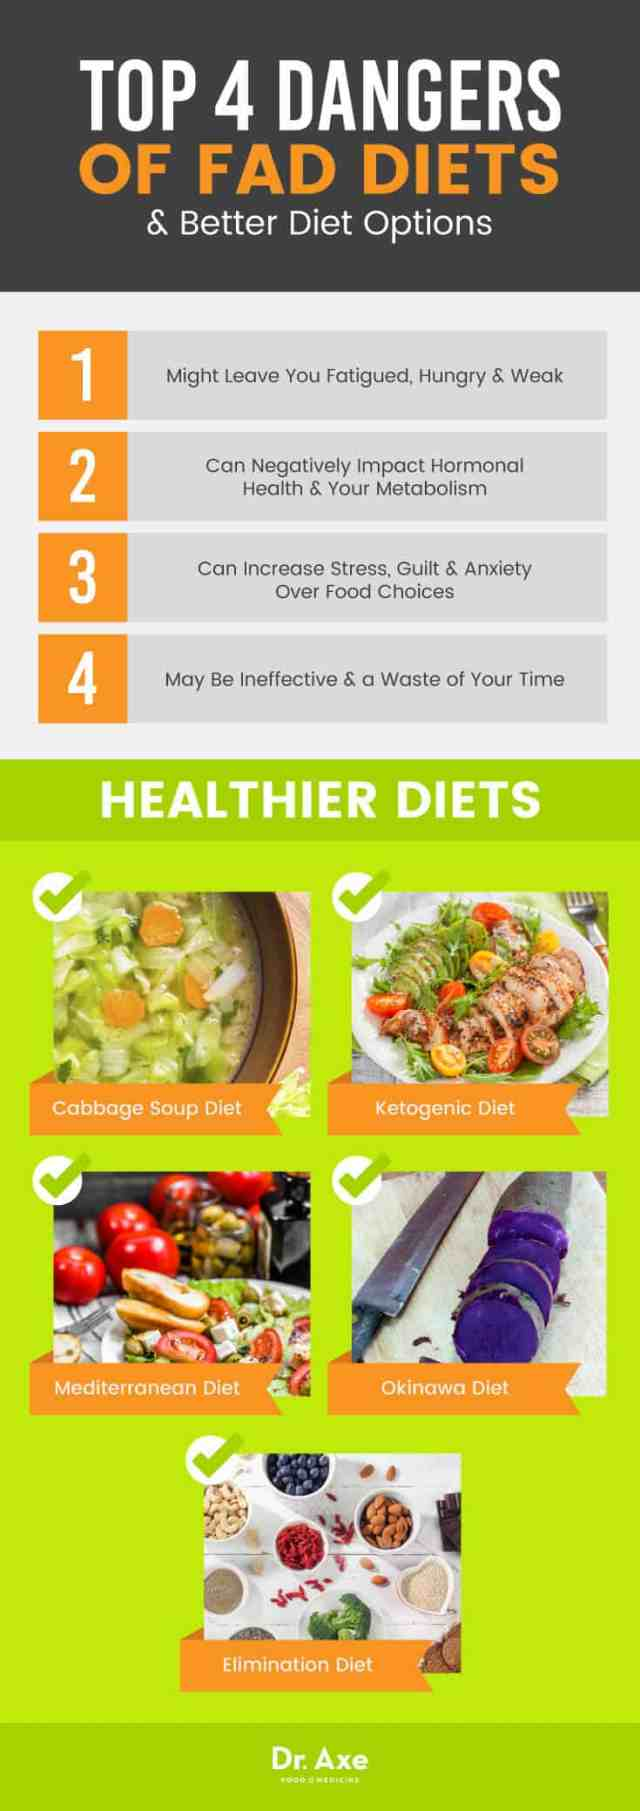 Top four dangers of fad diets - Dr. Axe